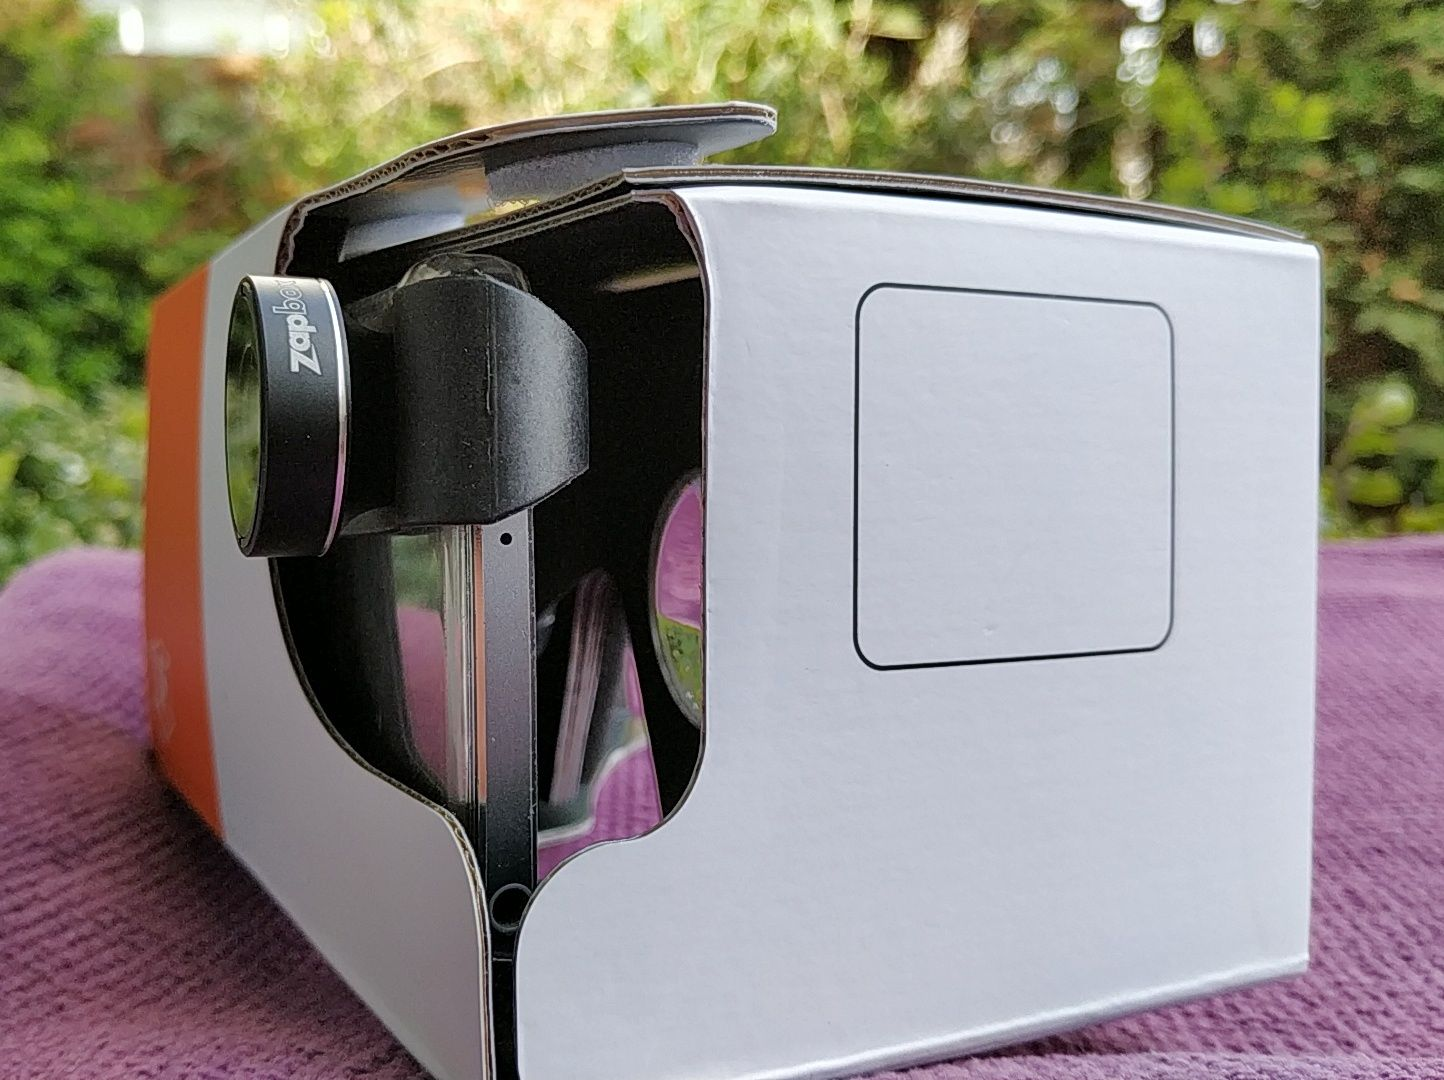 ZapBox 2.0 Mixed Reality Cardboard Headset With Clip On